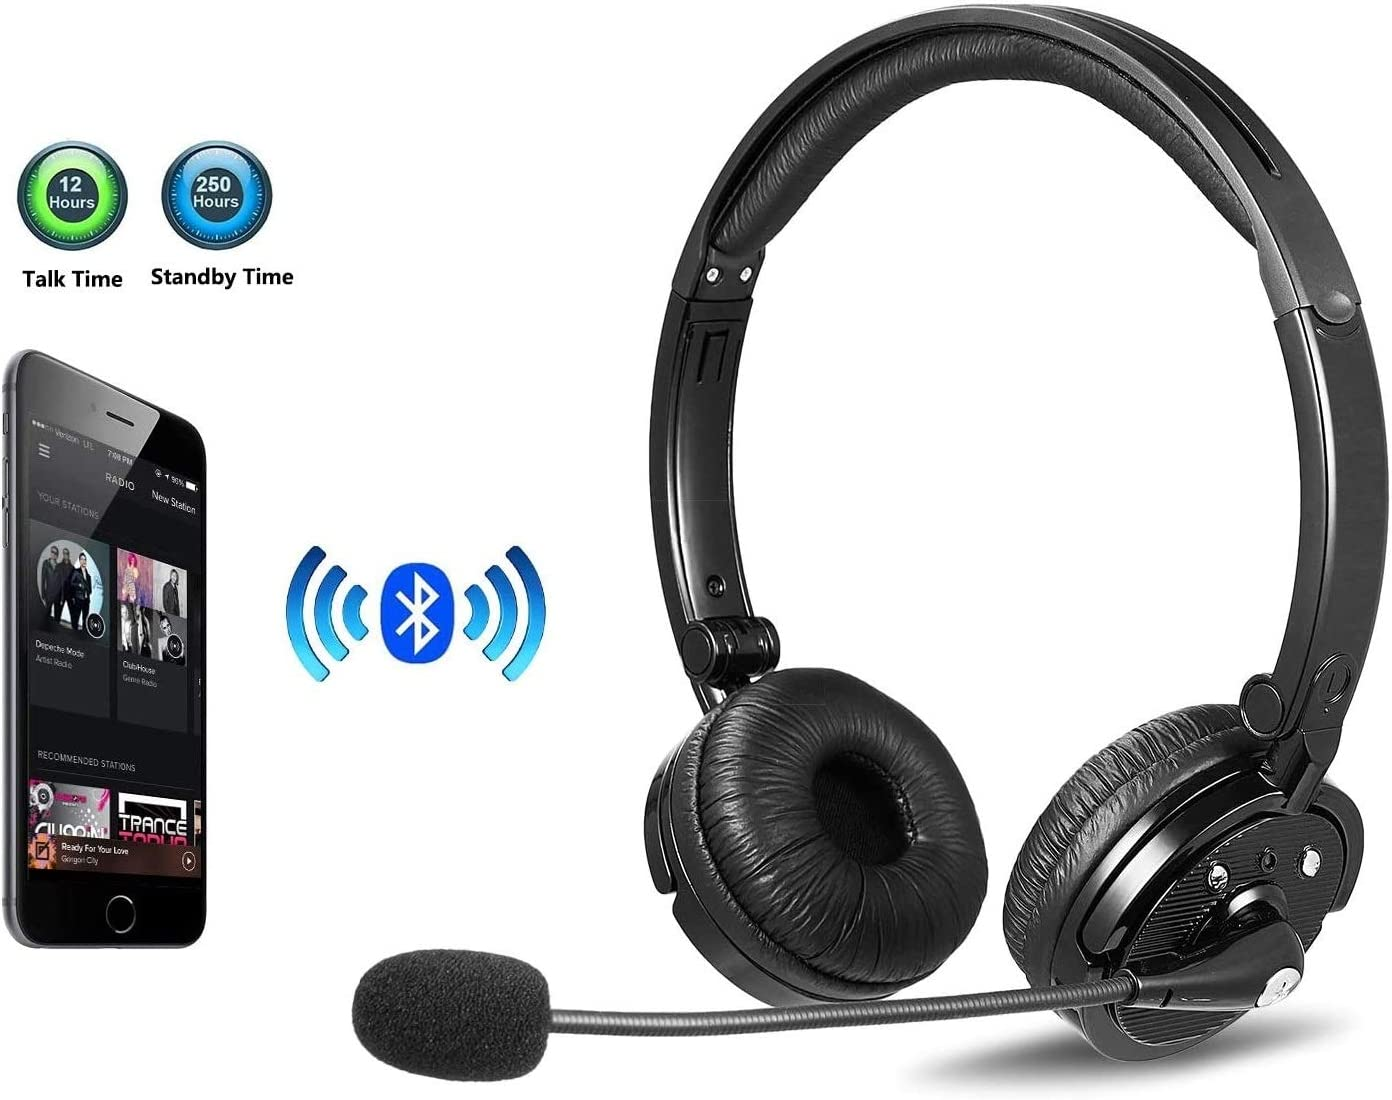 Bluetooth Headphones with Microphone LUXMO Wireless Bluetooth Headset [Noise Cancelling & Listen to Music] with Mic Car Phone Headset for iPhone Android Cellphone Office Call Center Skype Truck Driver